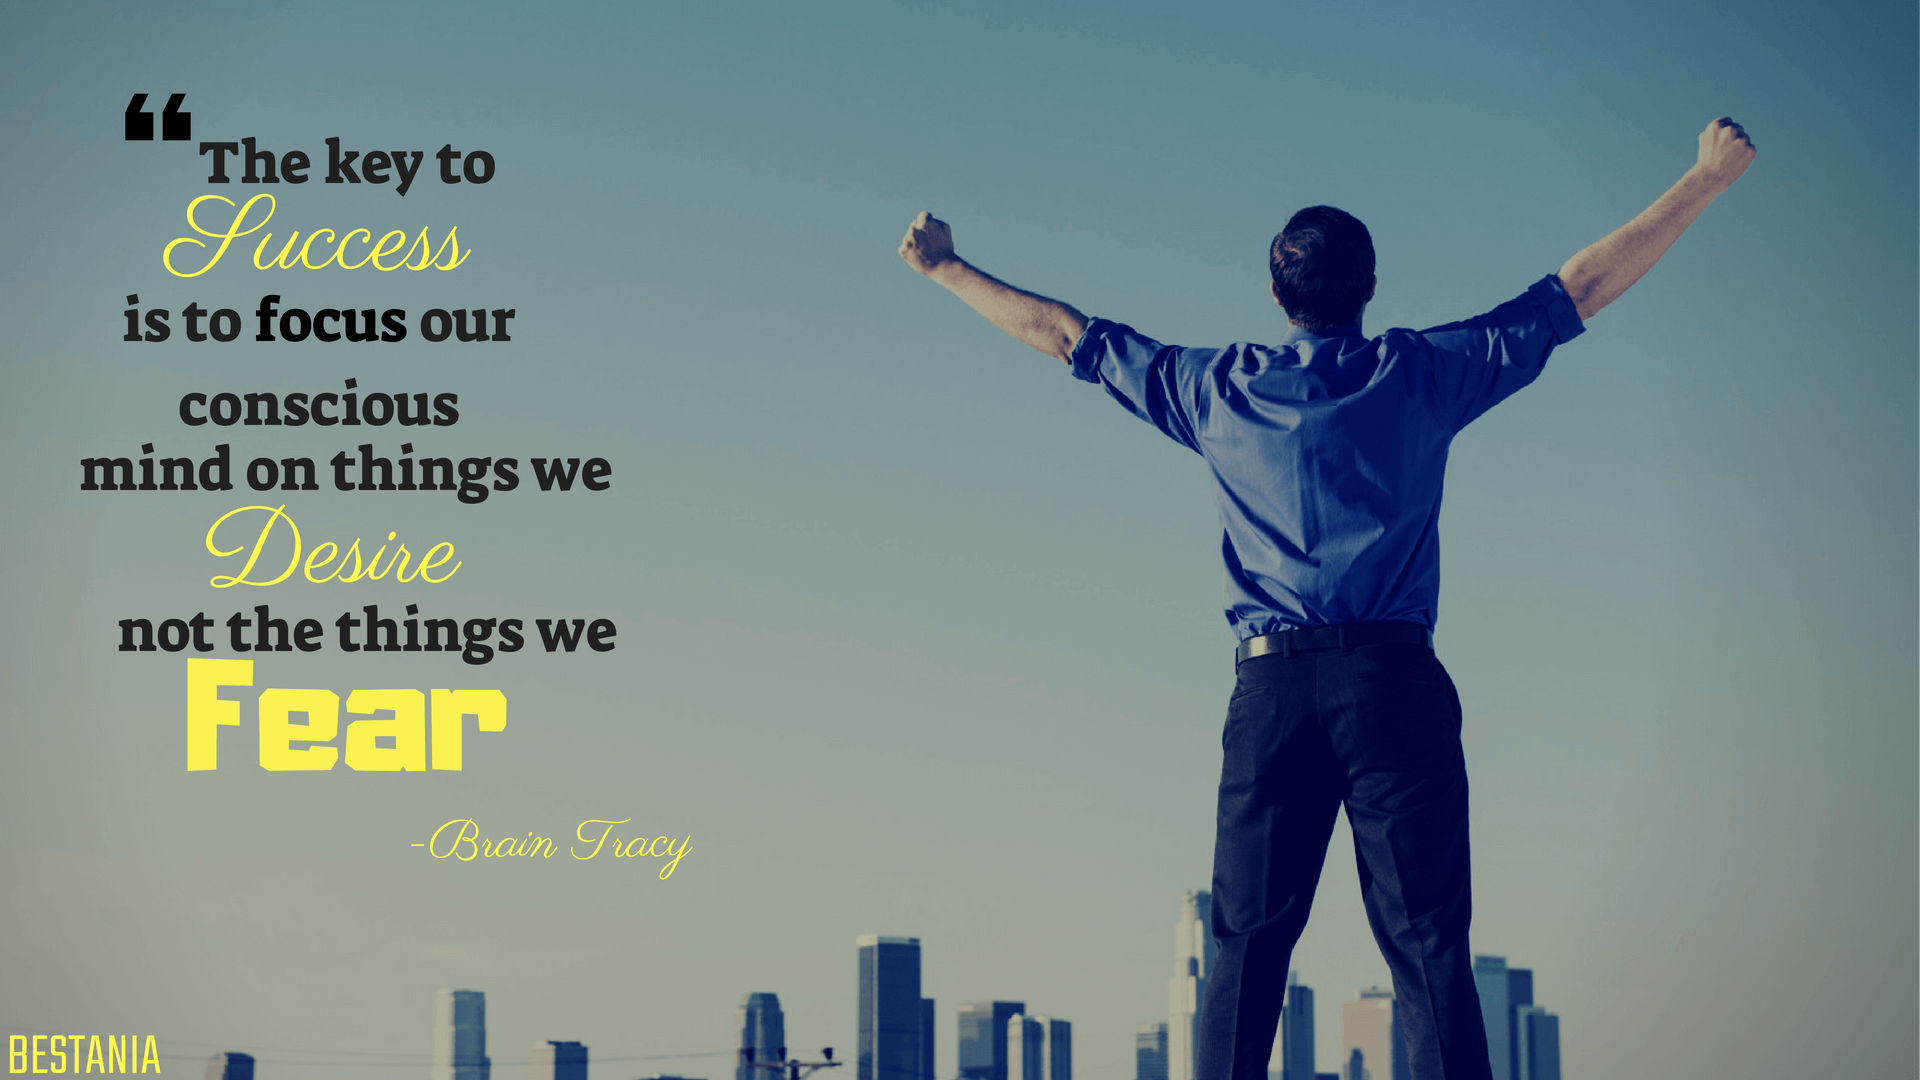 The key to success is to focus our conscious mind on things we desire not things we fear.